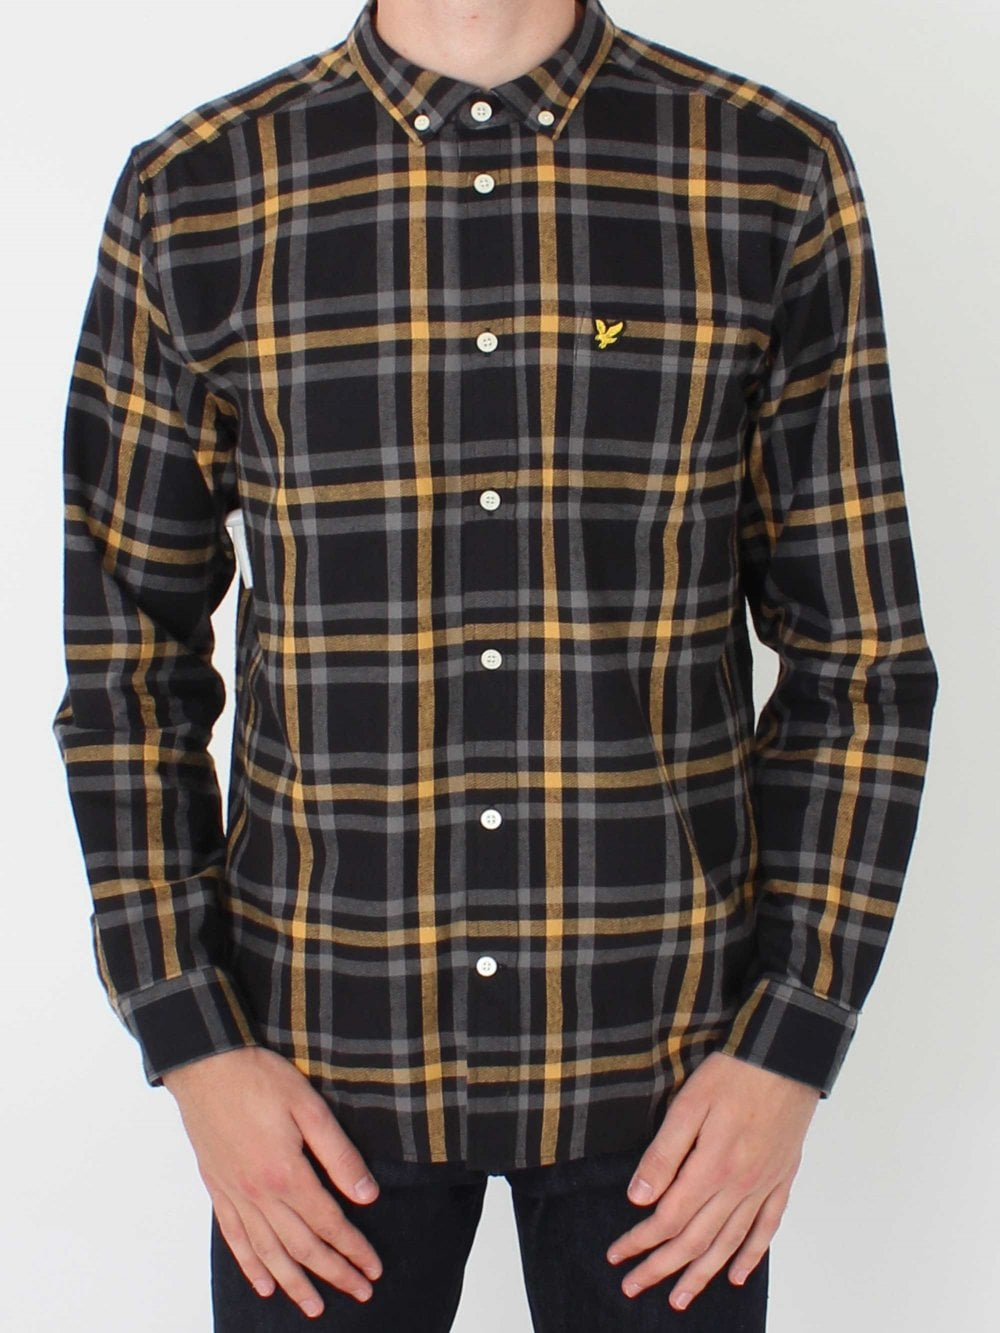 086de4bbd459 Lyle and Scott Check Flannel Shirt in Black